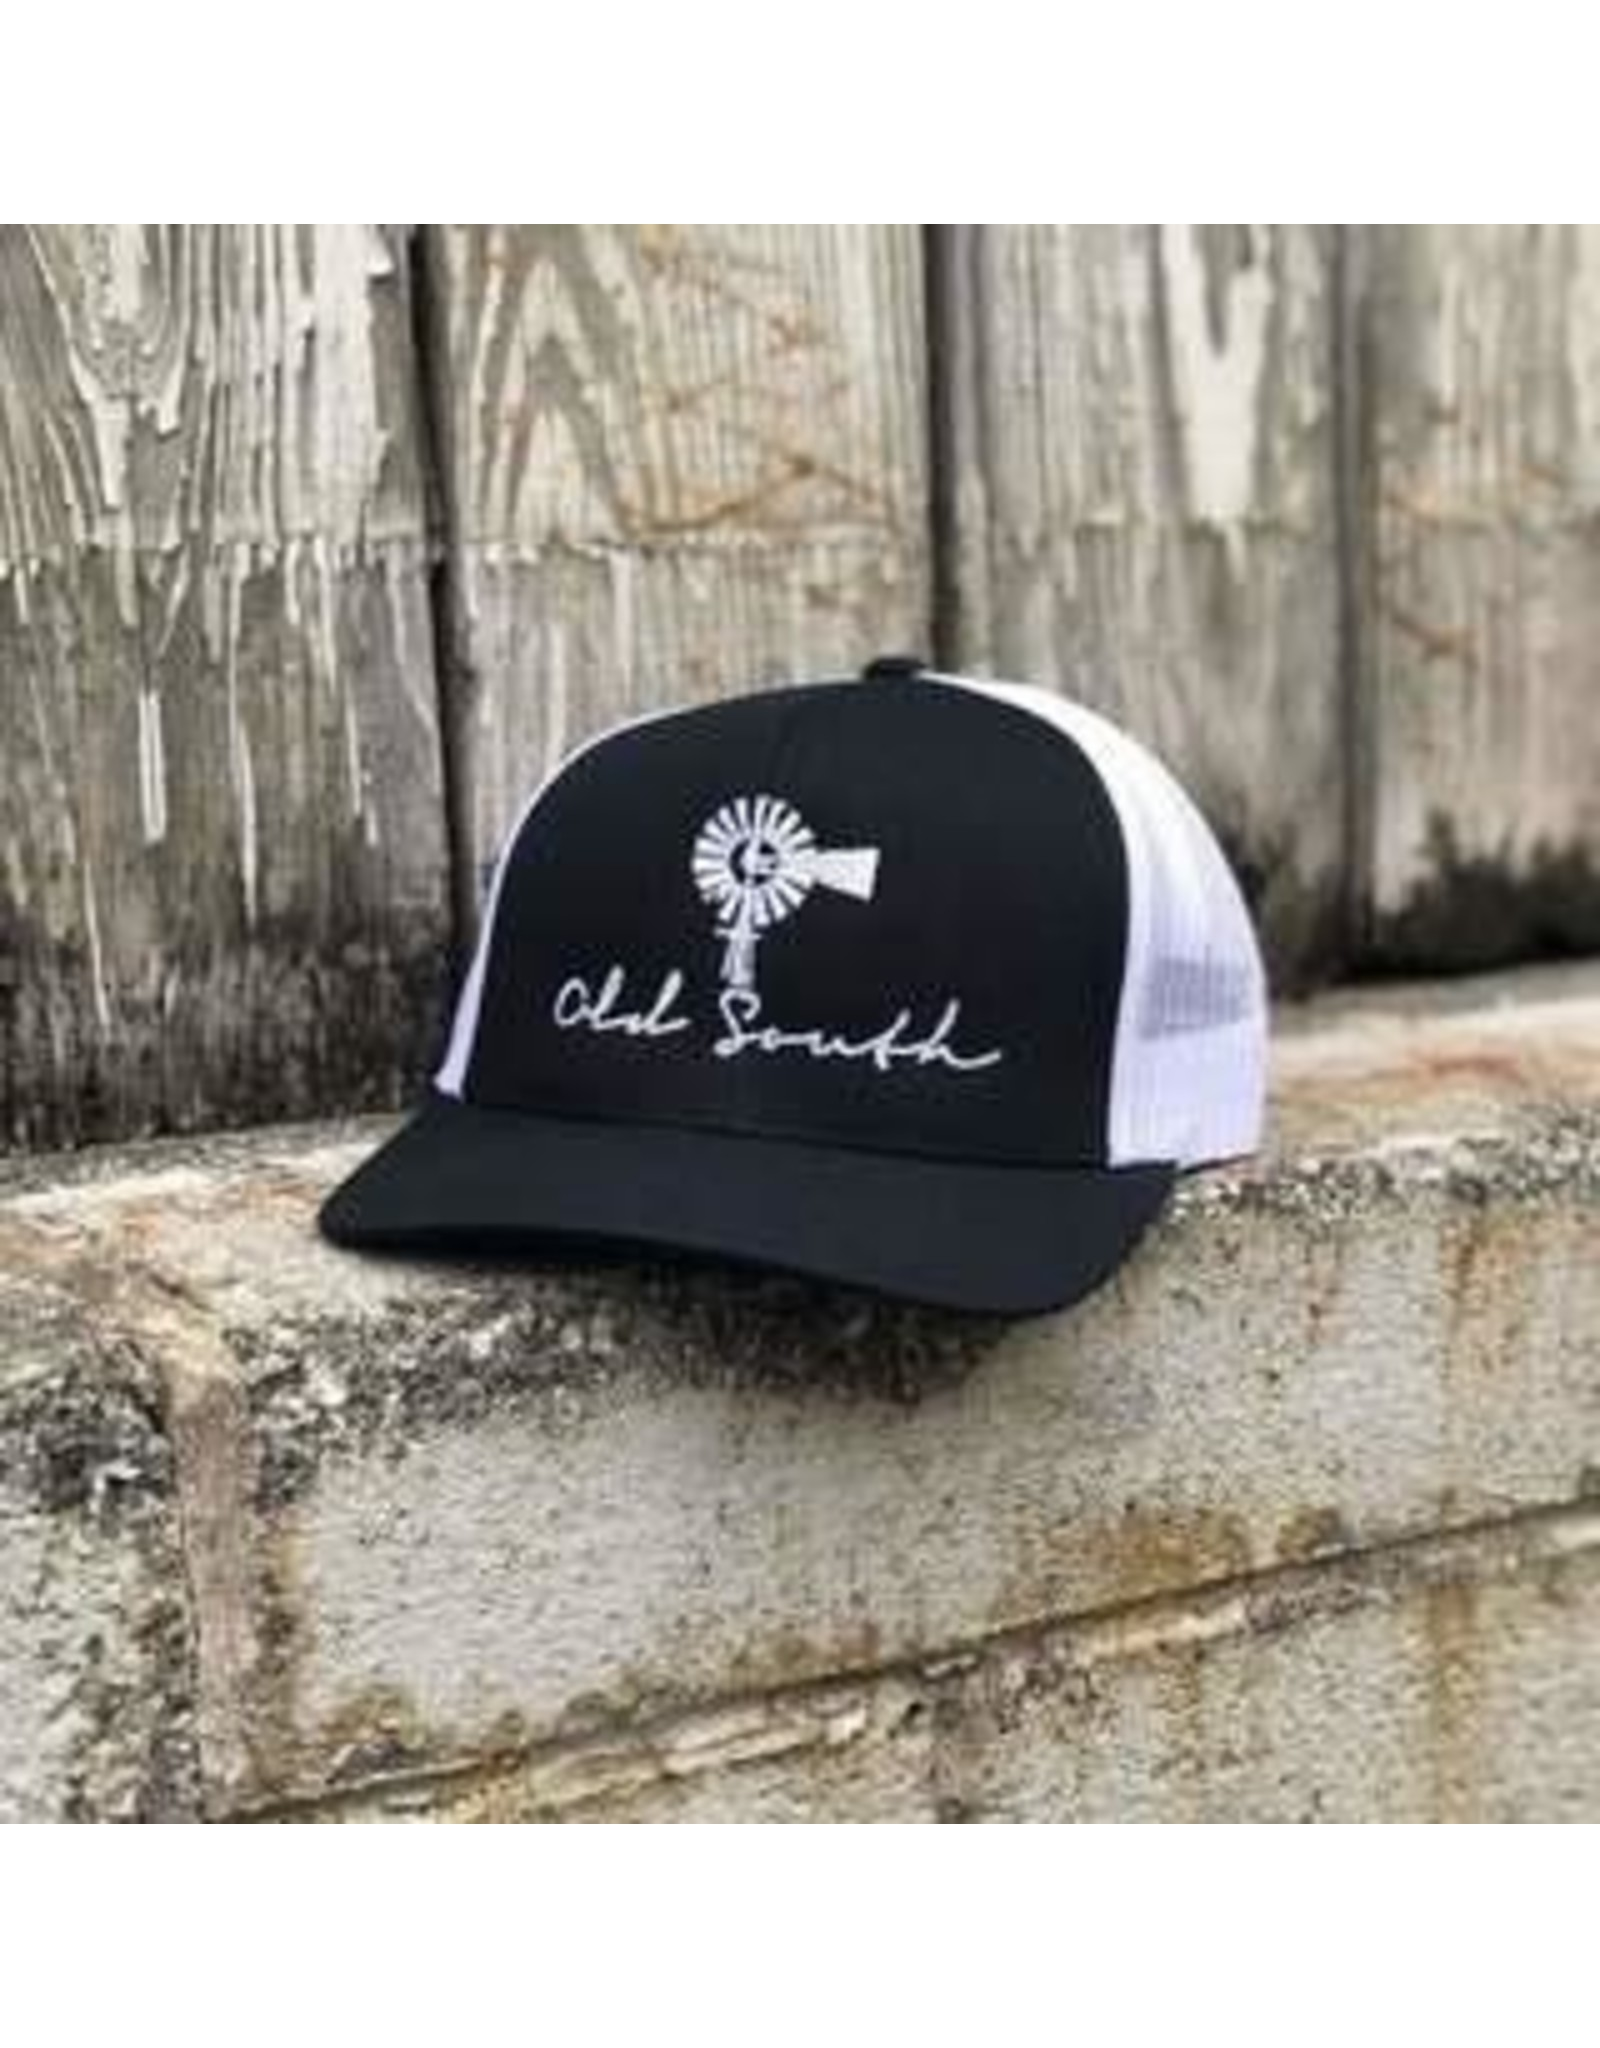 Hats OLD SOUTH NS-CTRU Classic